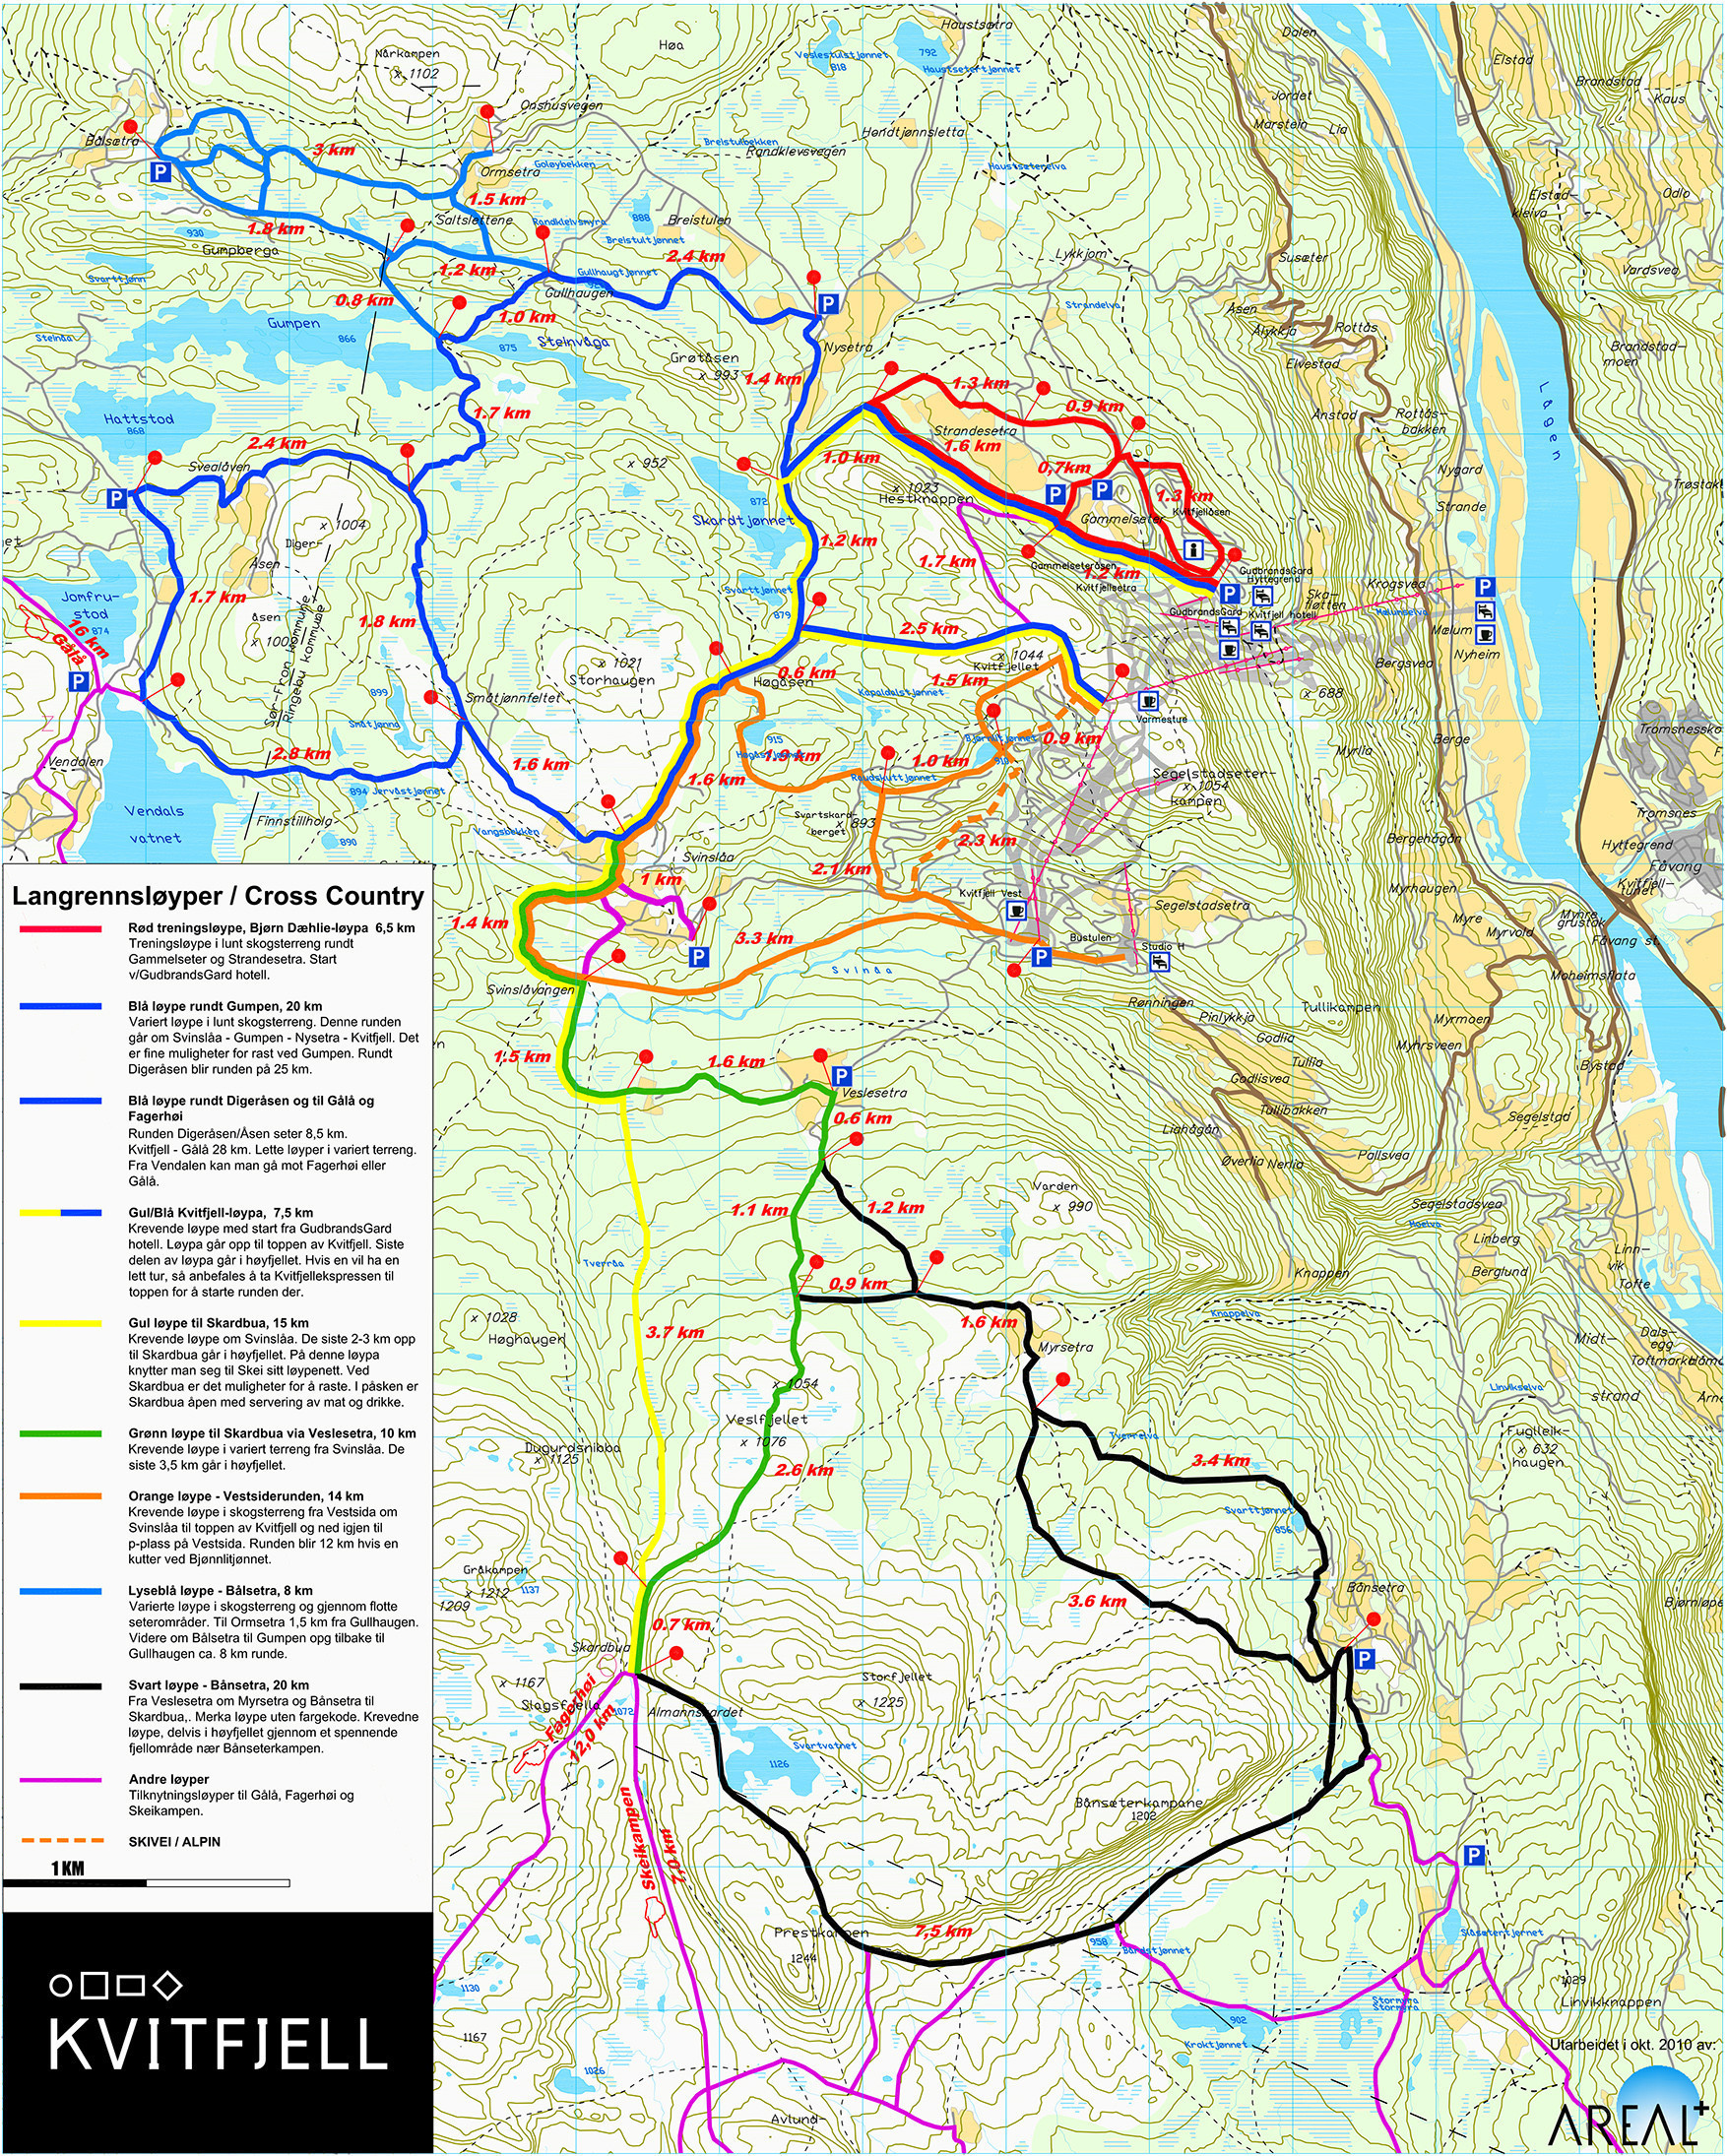 Cross Country Skiing Trail Map Kvitfjell Nordic Trail Map